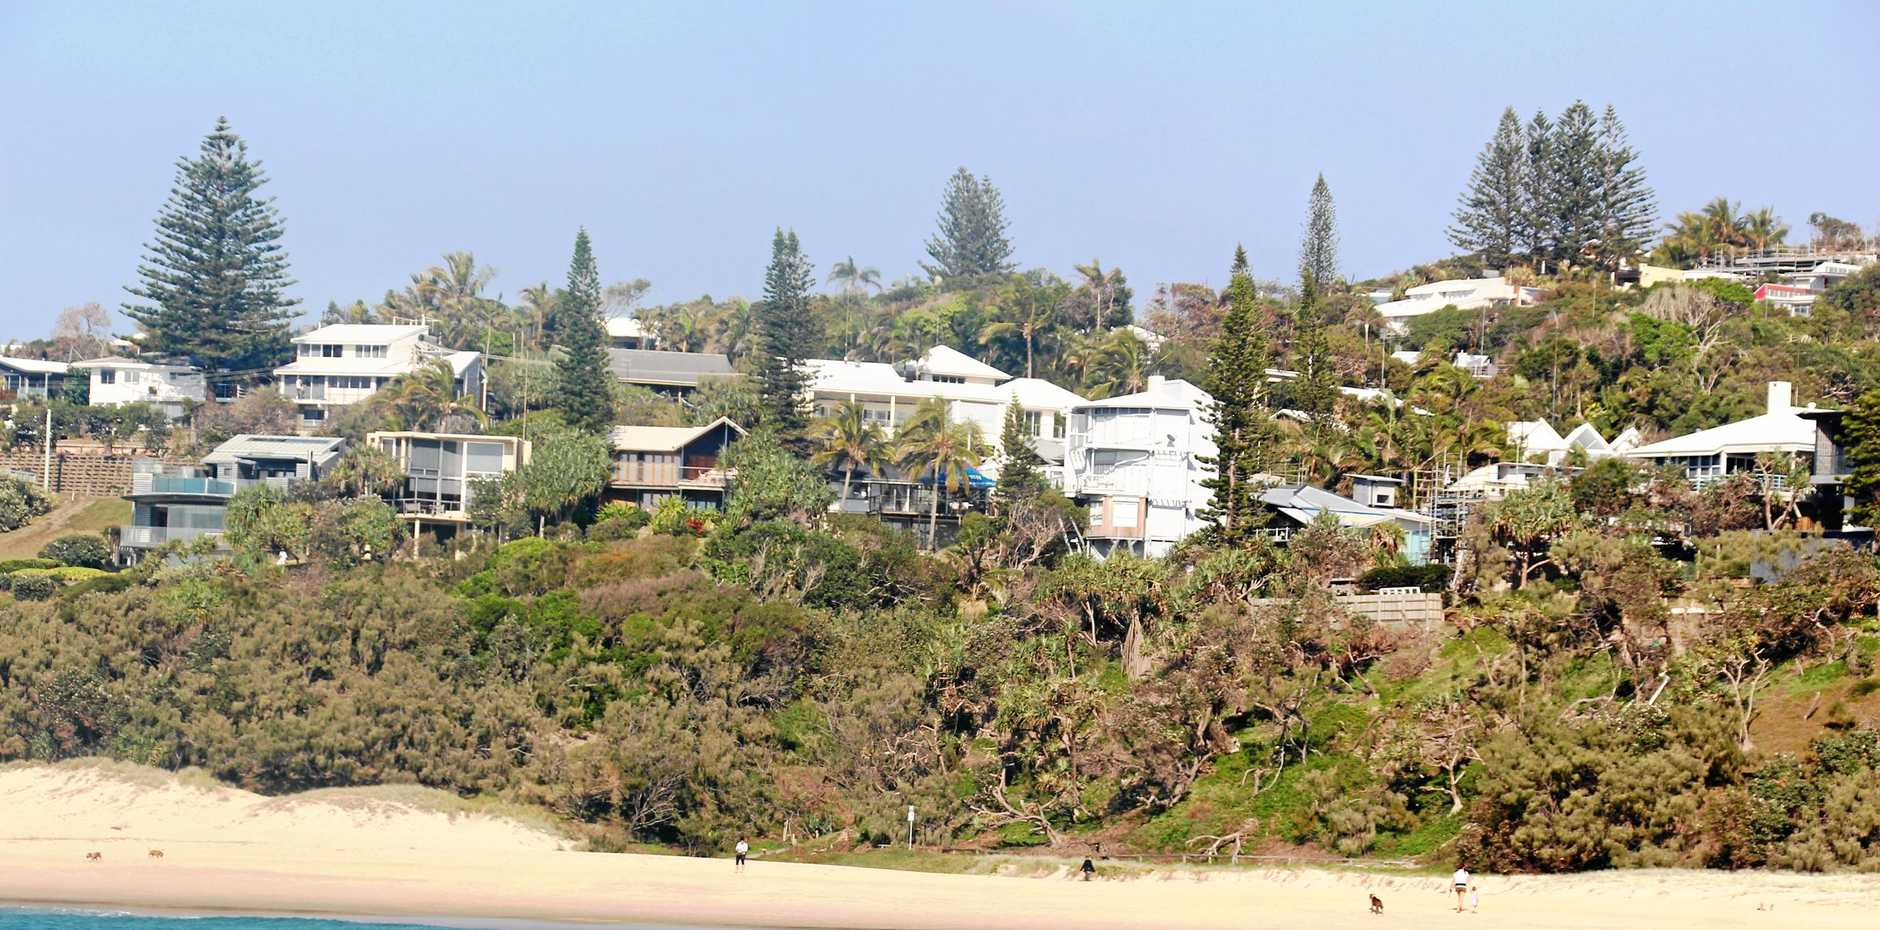 IT WAS once considered the playground for the rich and famous, now it's the Sunshine Coast suburb making the rich, even richer.